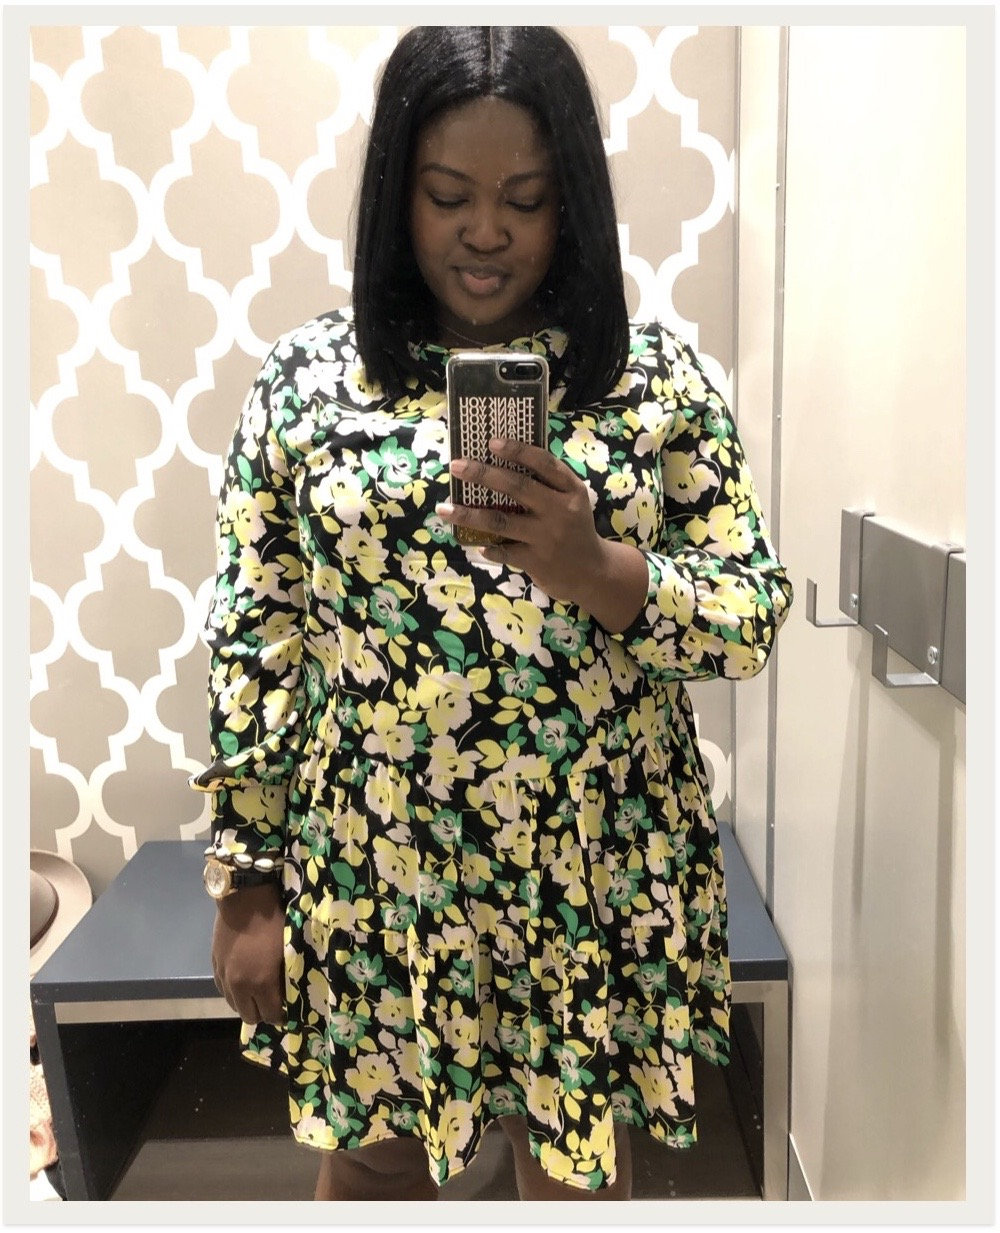 target-tryon-spring-from-supplechic-a-fashion-lifestyle-blog-based-out-of-baltimore